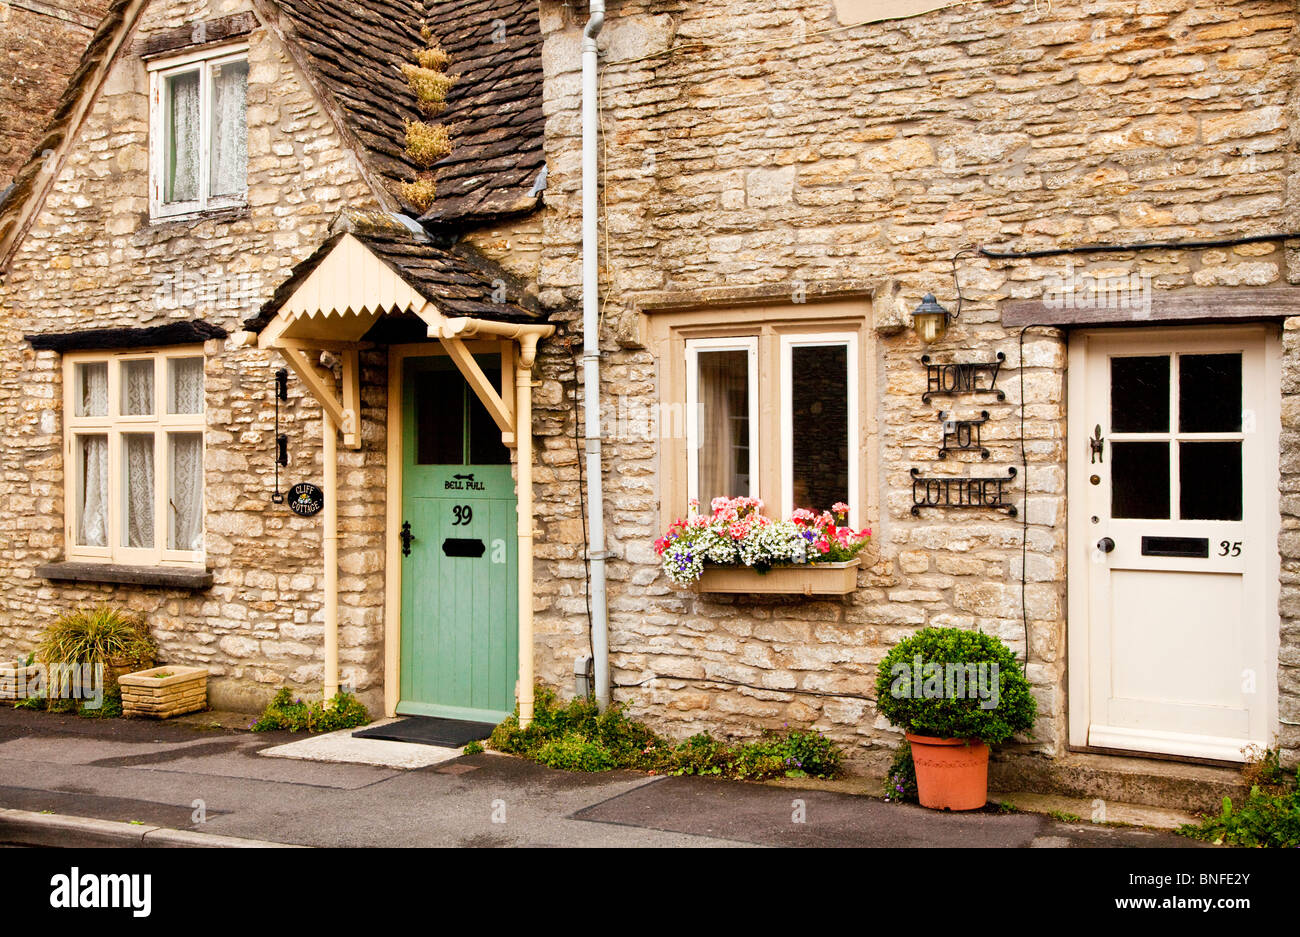 Typical quaint Cotswold stone cottages in Sherston village, Wiltshire, England, UK - Stock Image